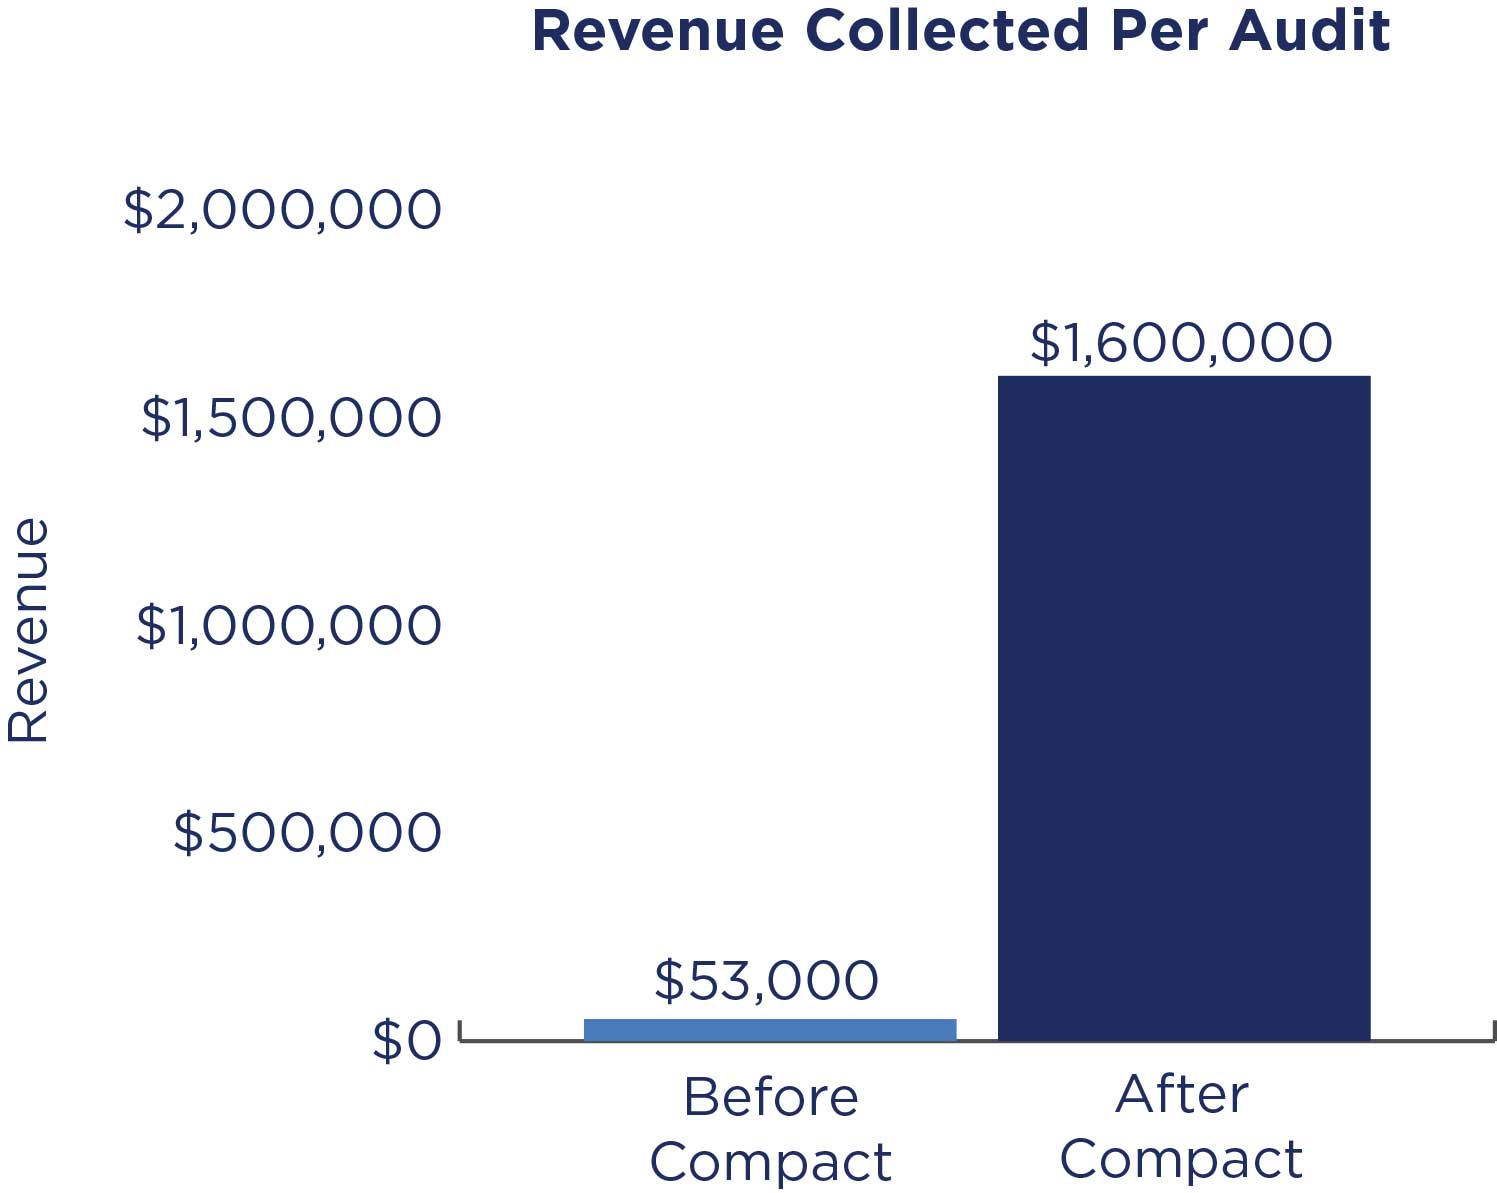 Chart of Revenue Collected Per Audit